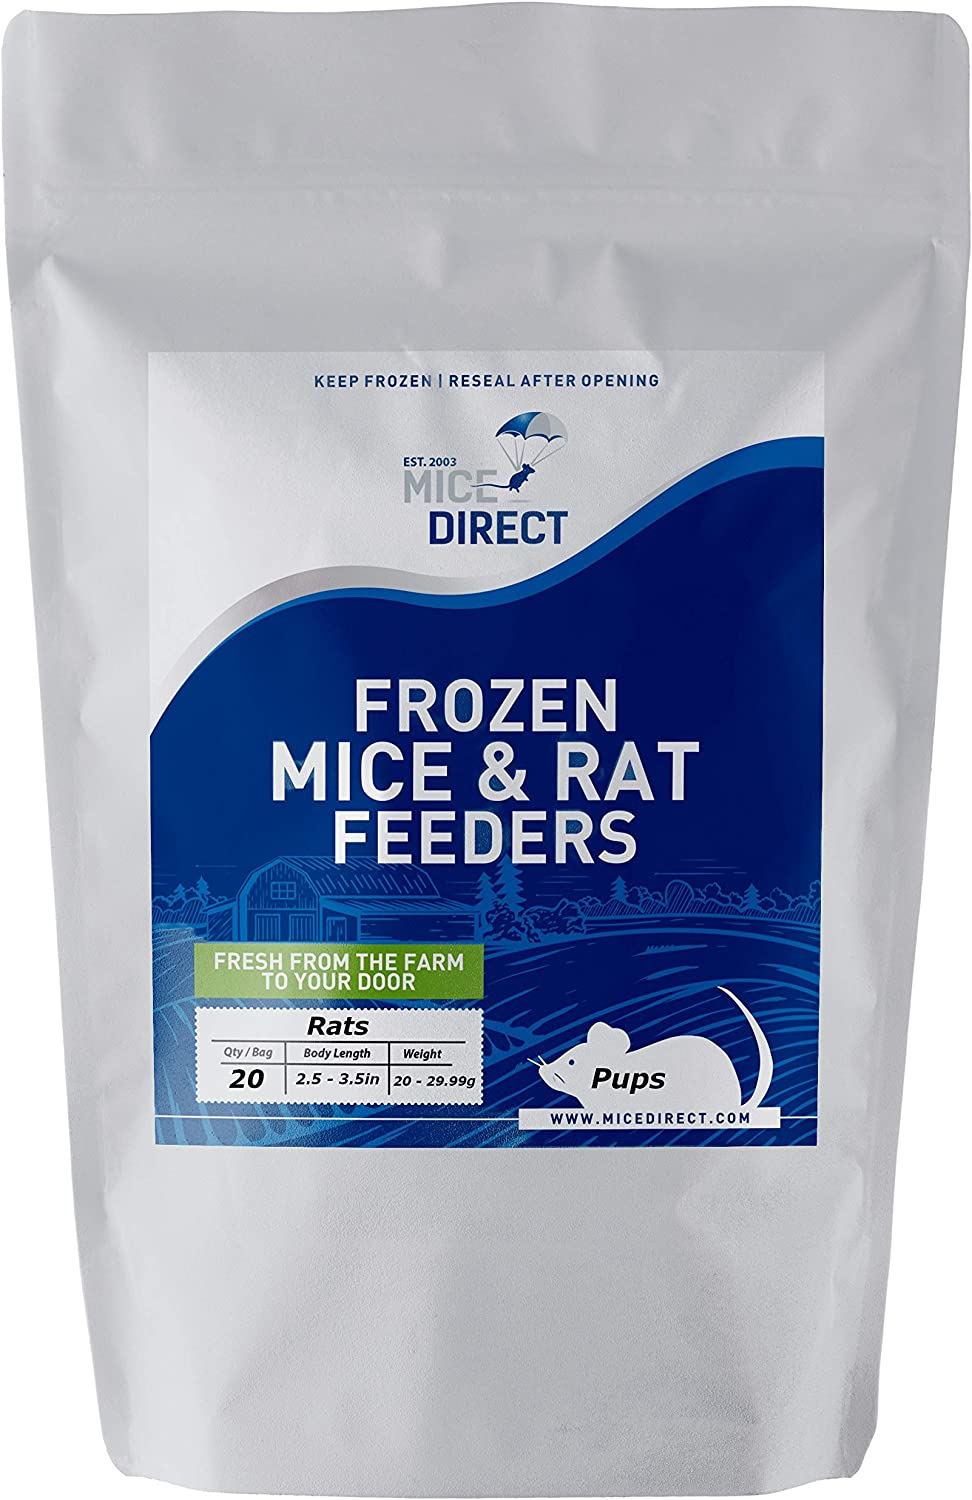 MiceDirect 20 Pup Rats: Pack of Frozen Pup Feeder Rats - Food for Corn Snakes, Ball Pythons, Lizards and Other Pet Reptiles - Freshest Snake Feed Supplies